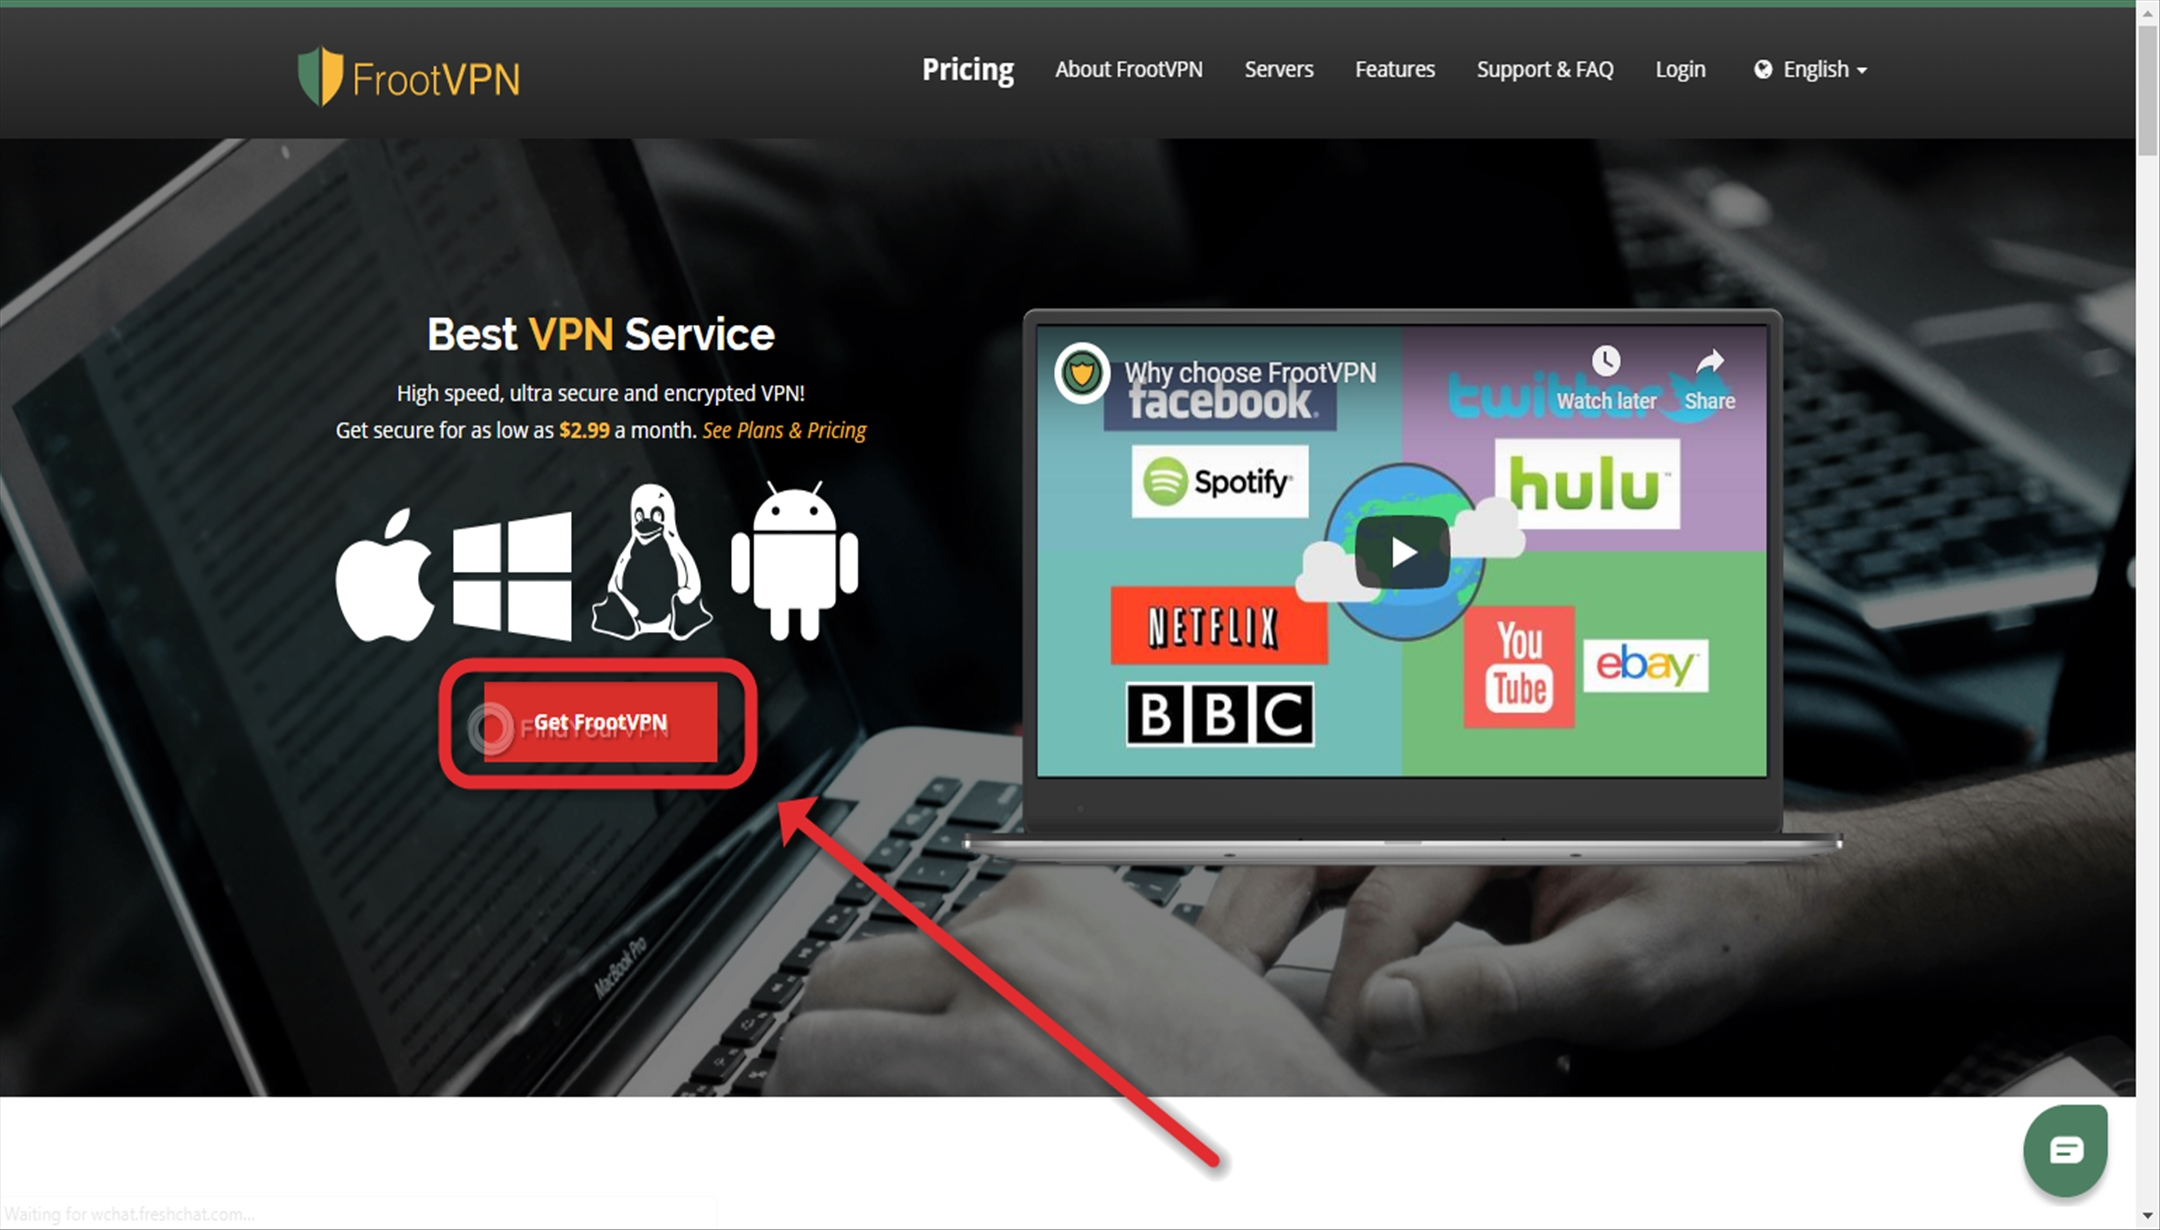 FrootVPN Creating Account Get Started